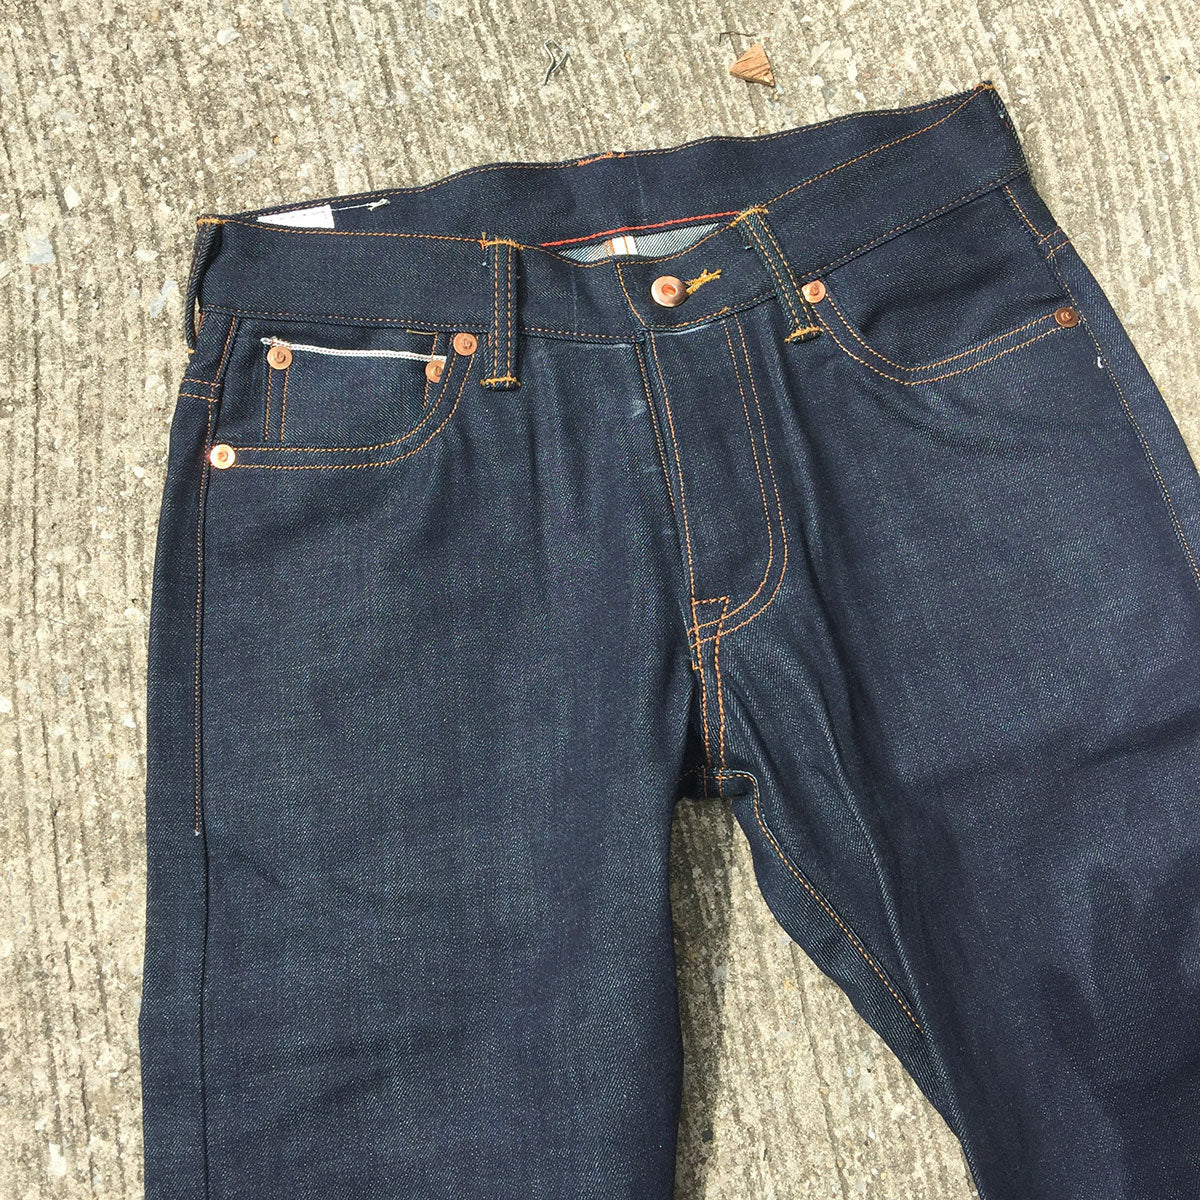 14oz OPSTK TEXAS Lot#12 Indigo 5 Pocket 28W 38L 901 SLIM Fit